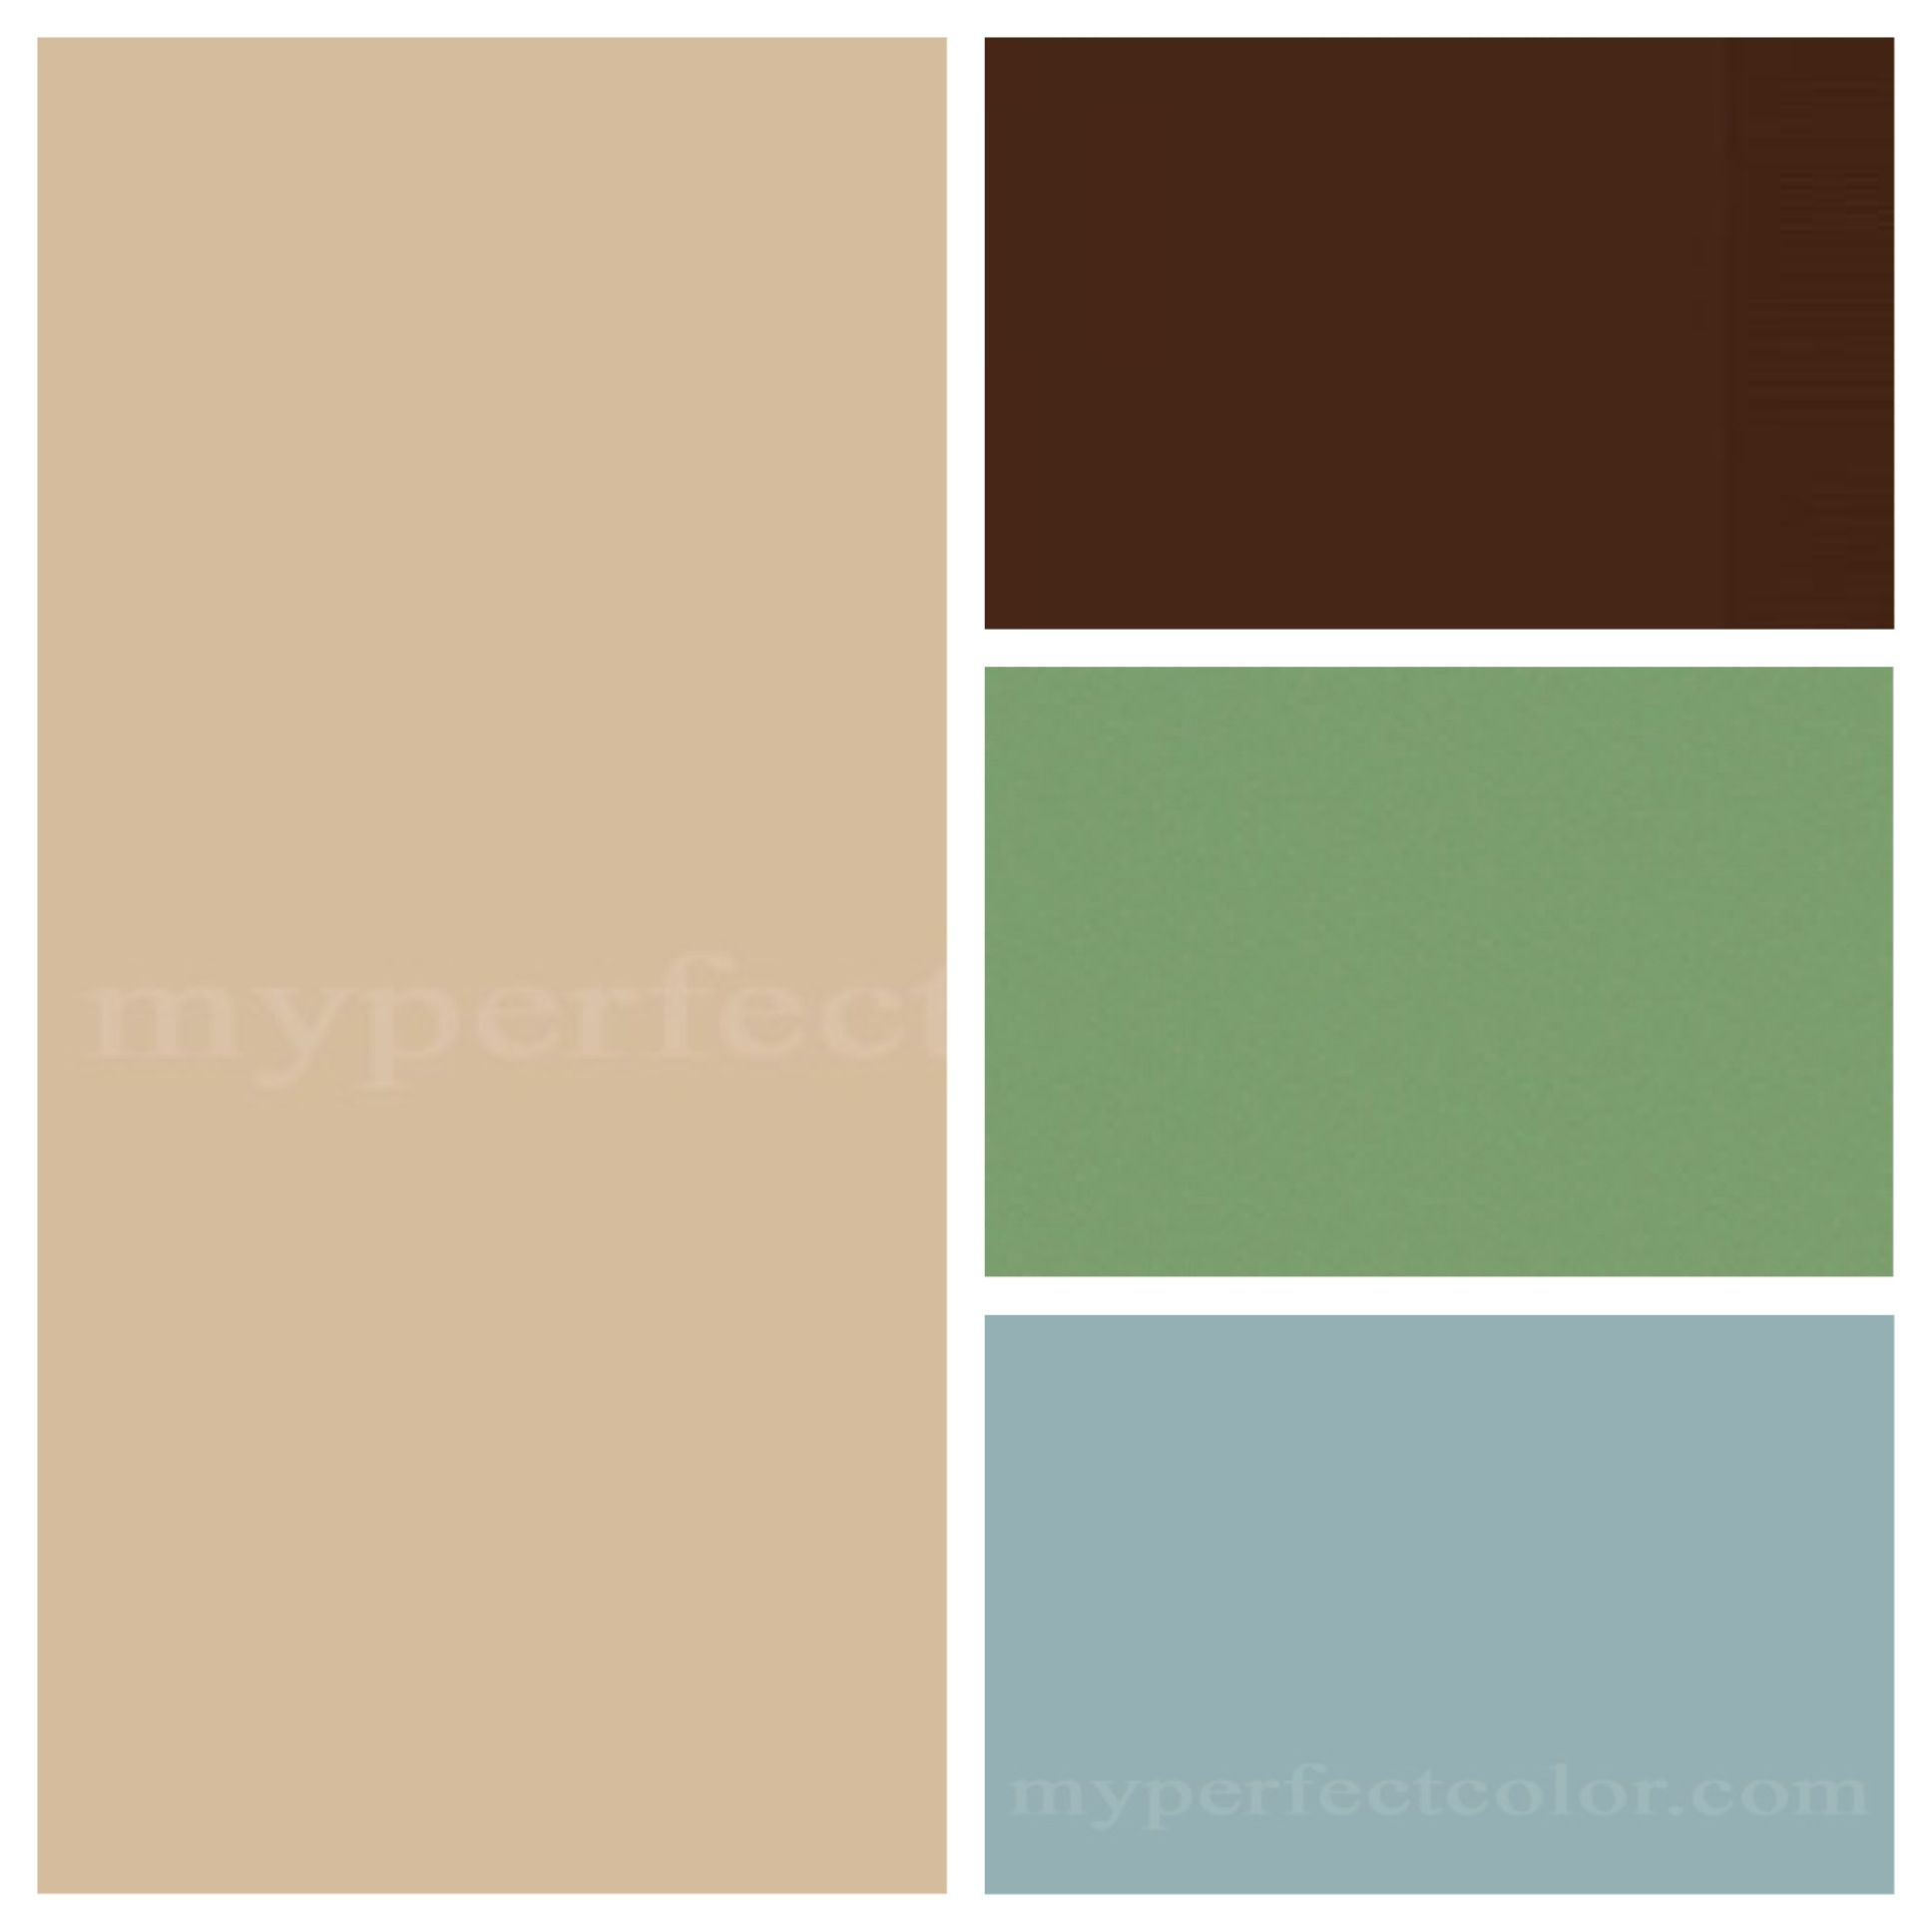 Woodland Color Scheme  have a background in the blue or green with